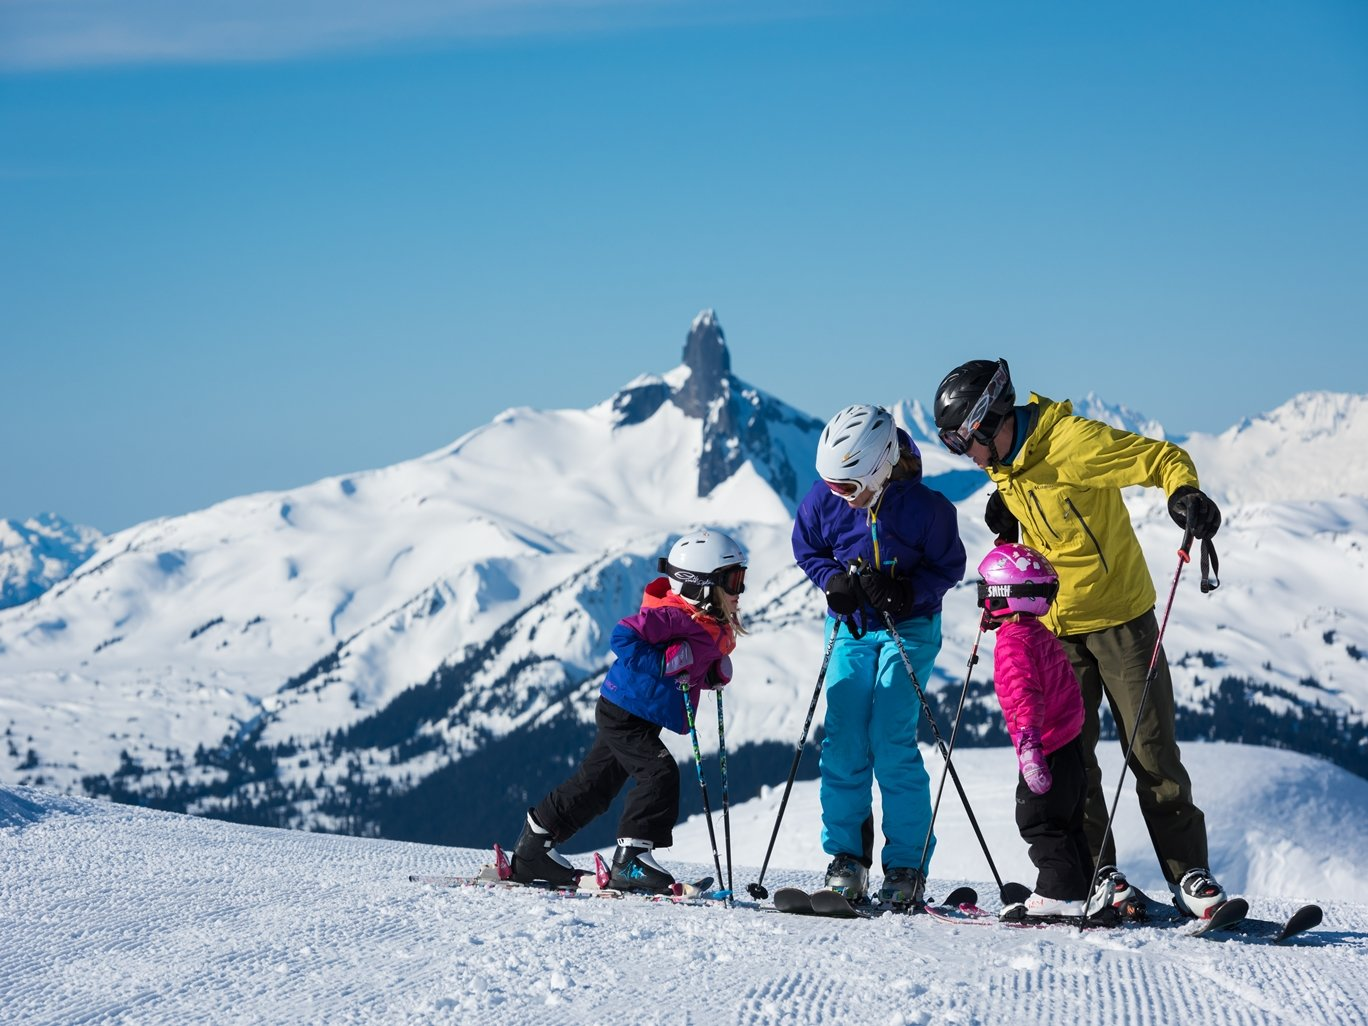 Spring Skiing in Whistler Photo by Mike Crane